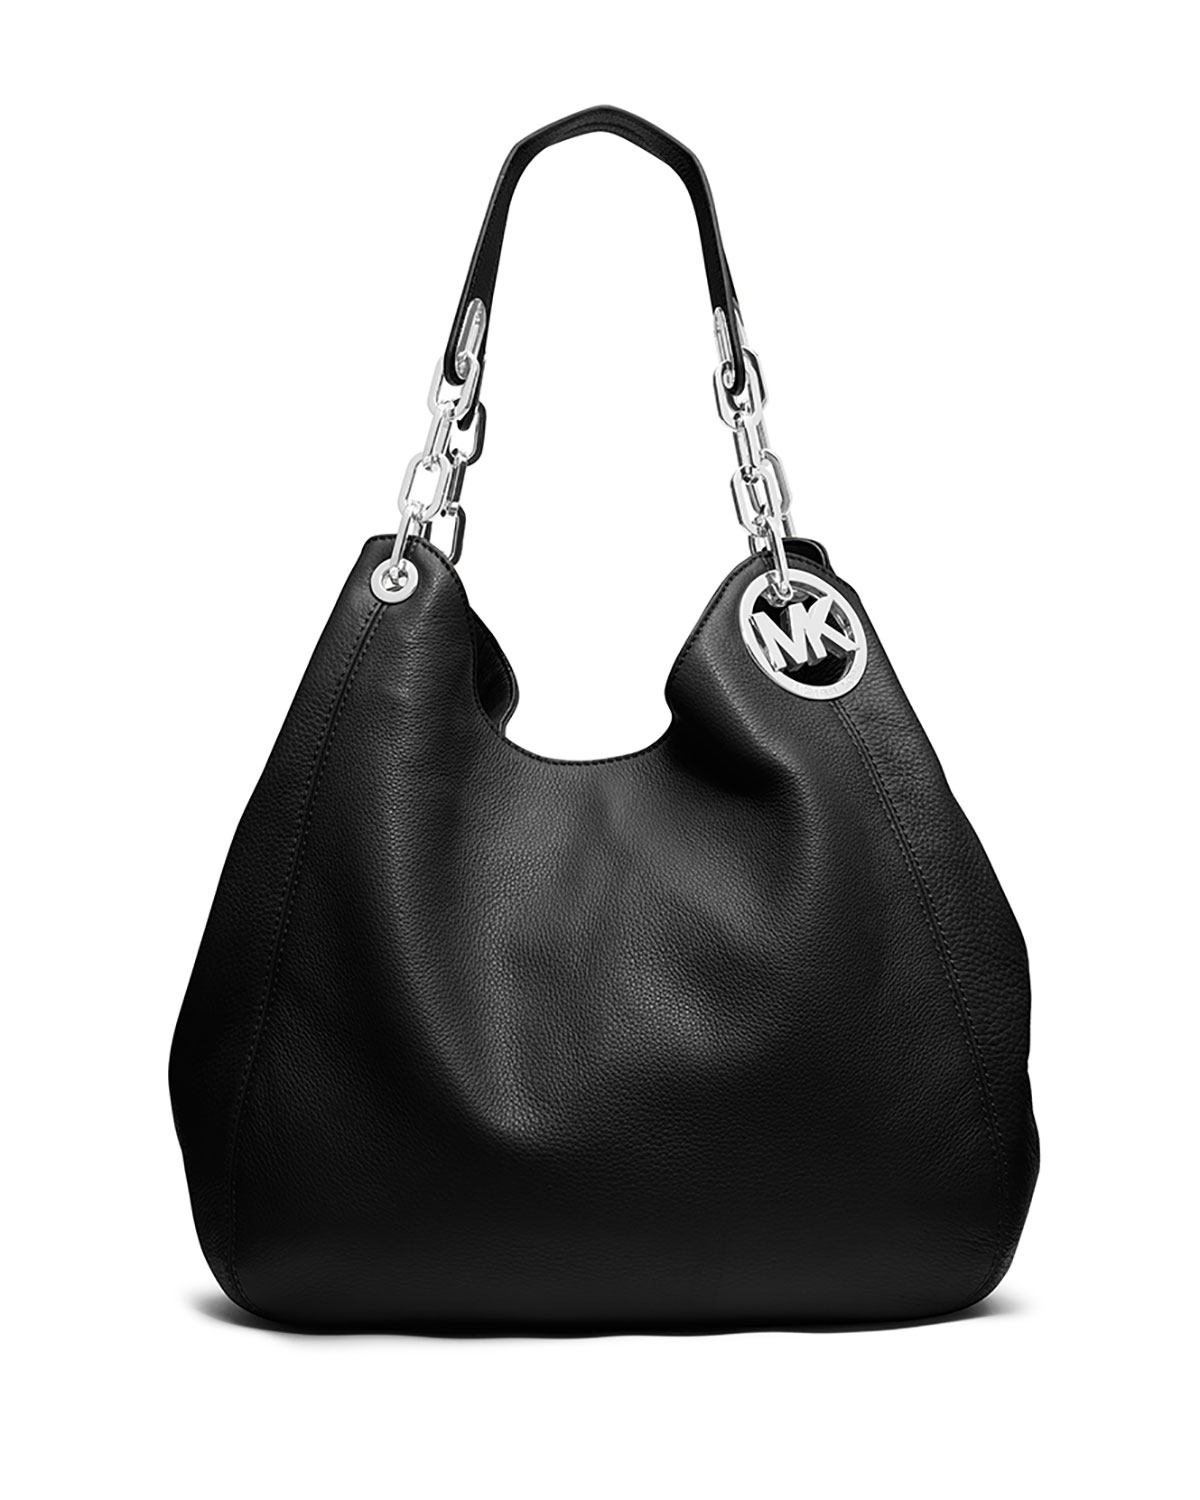 6a6077528c MICHAEL Michael Kors Fulton Large Leather Shoulder Tote Bag